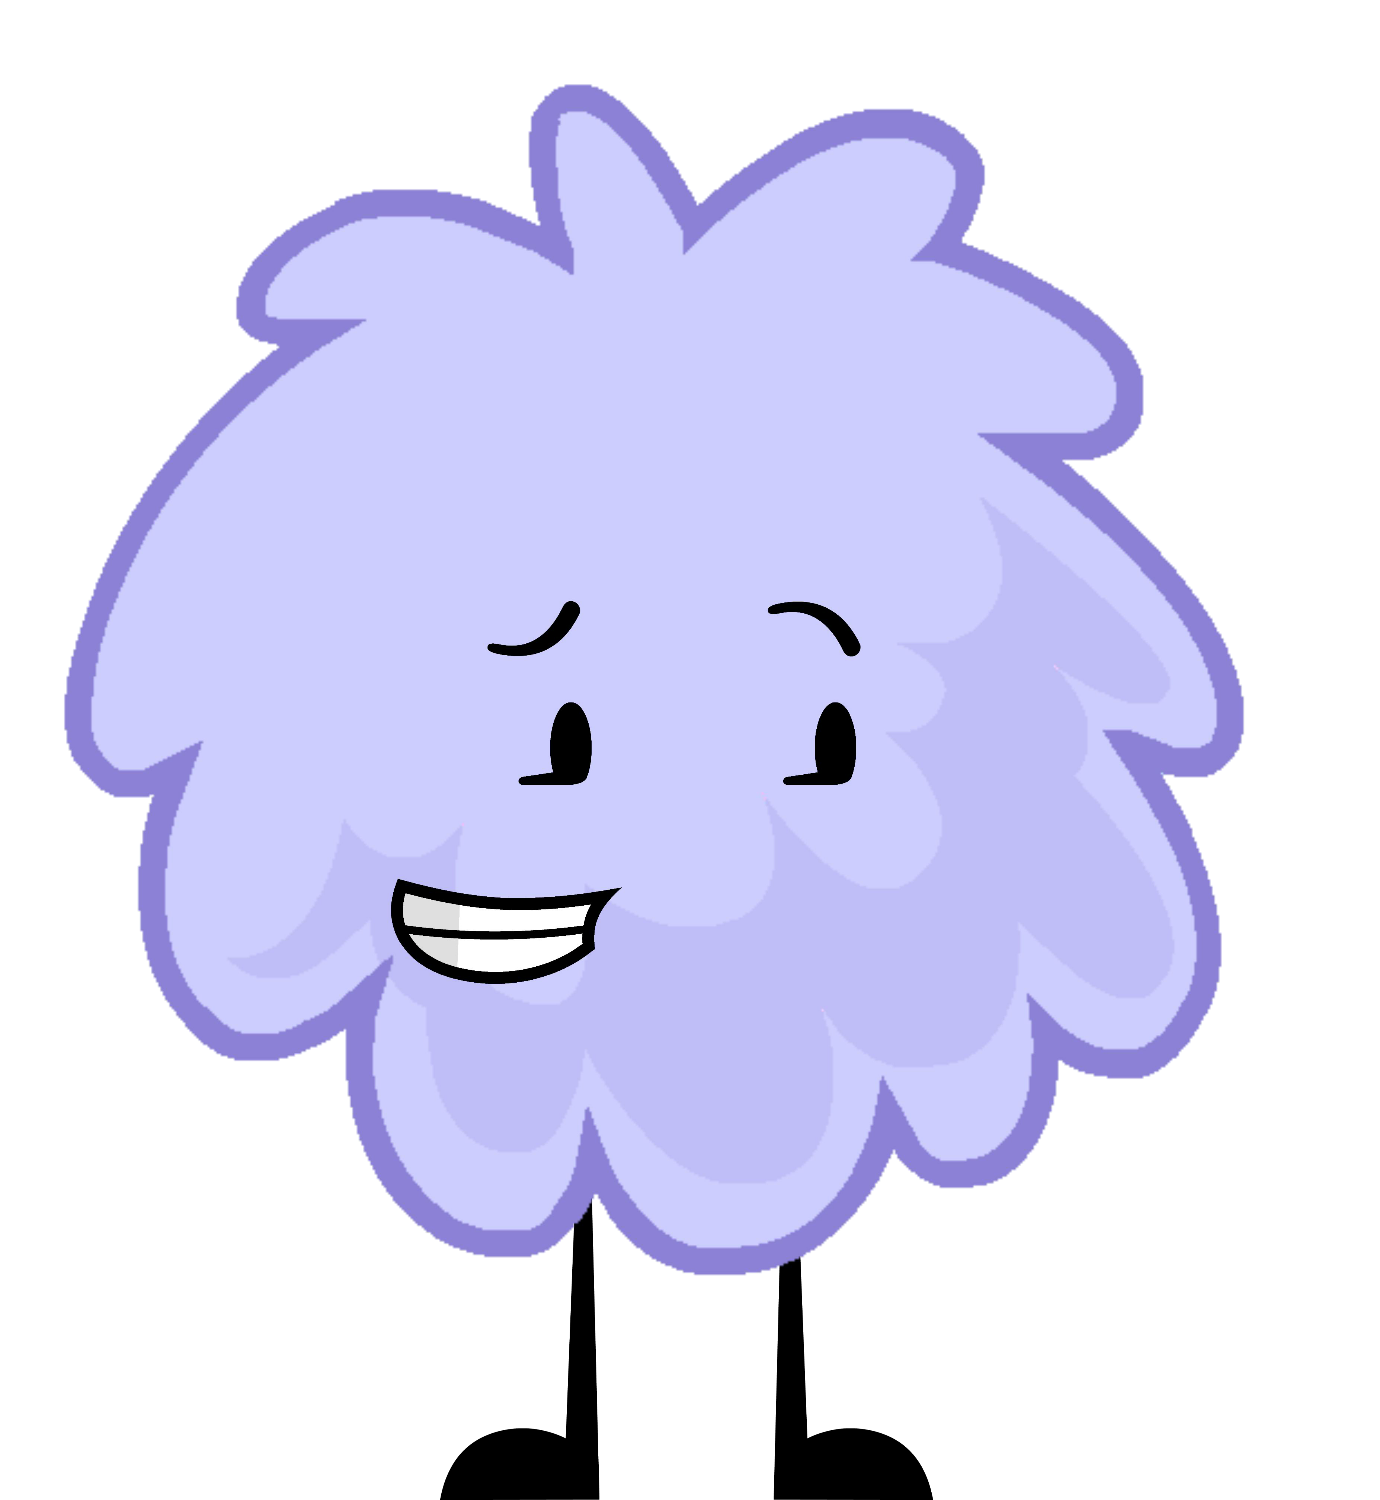 Glue clipart class object. Image puff ball pose